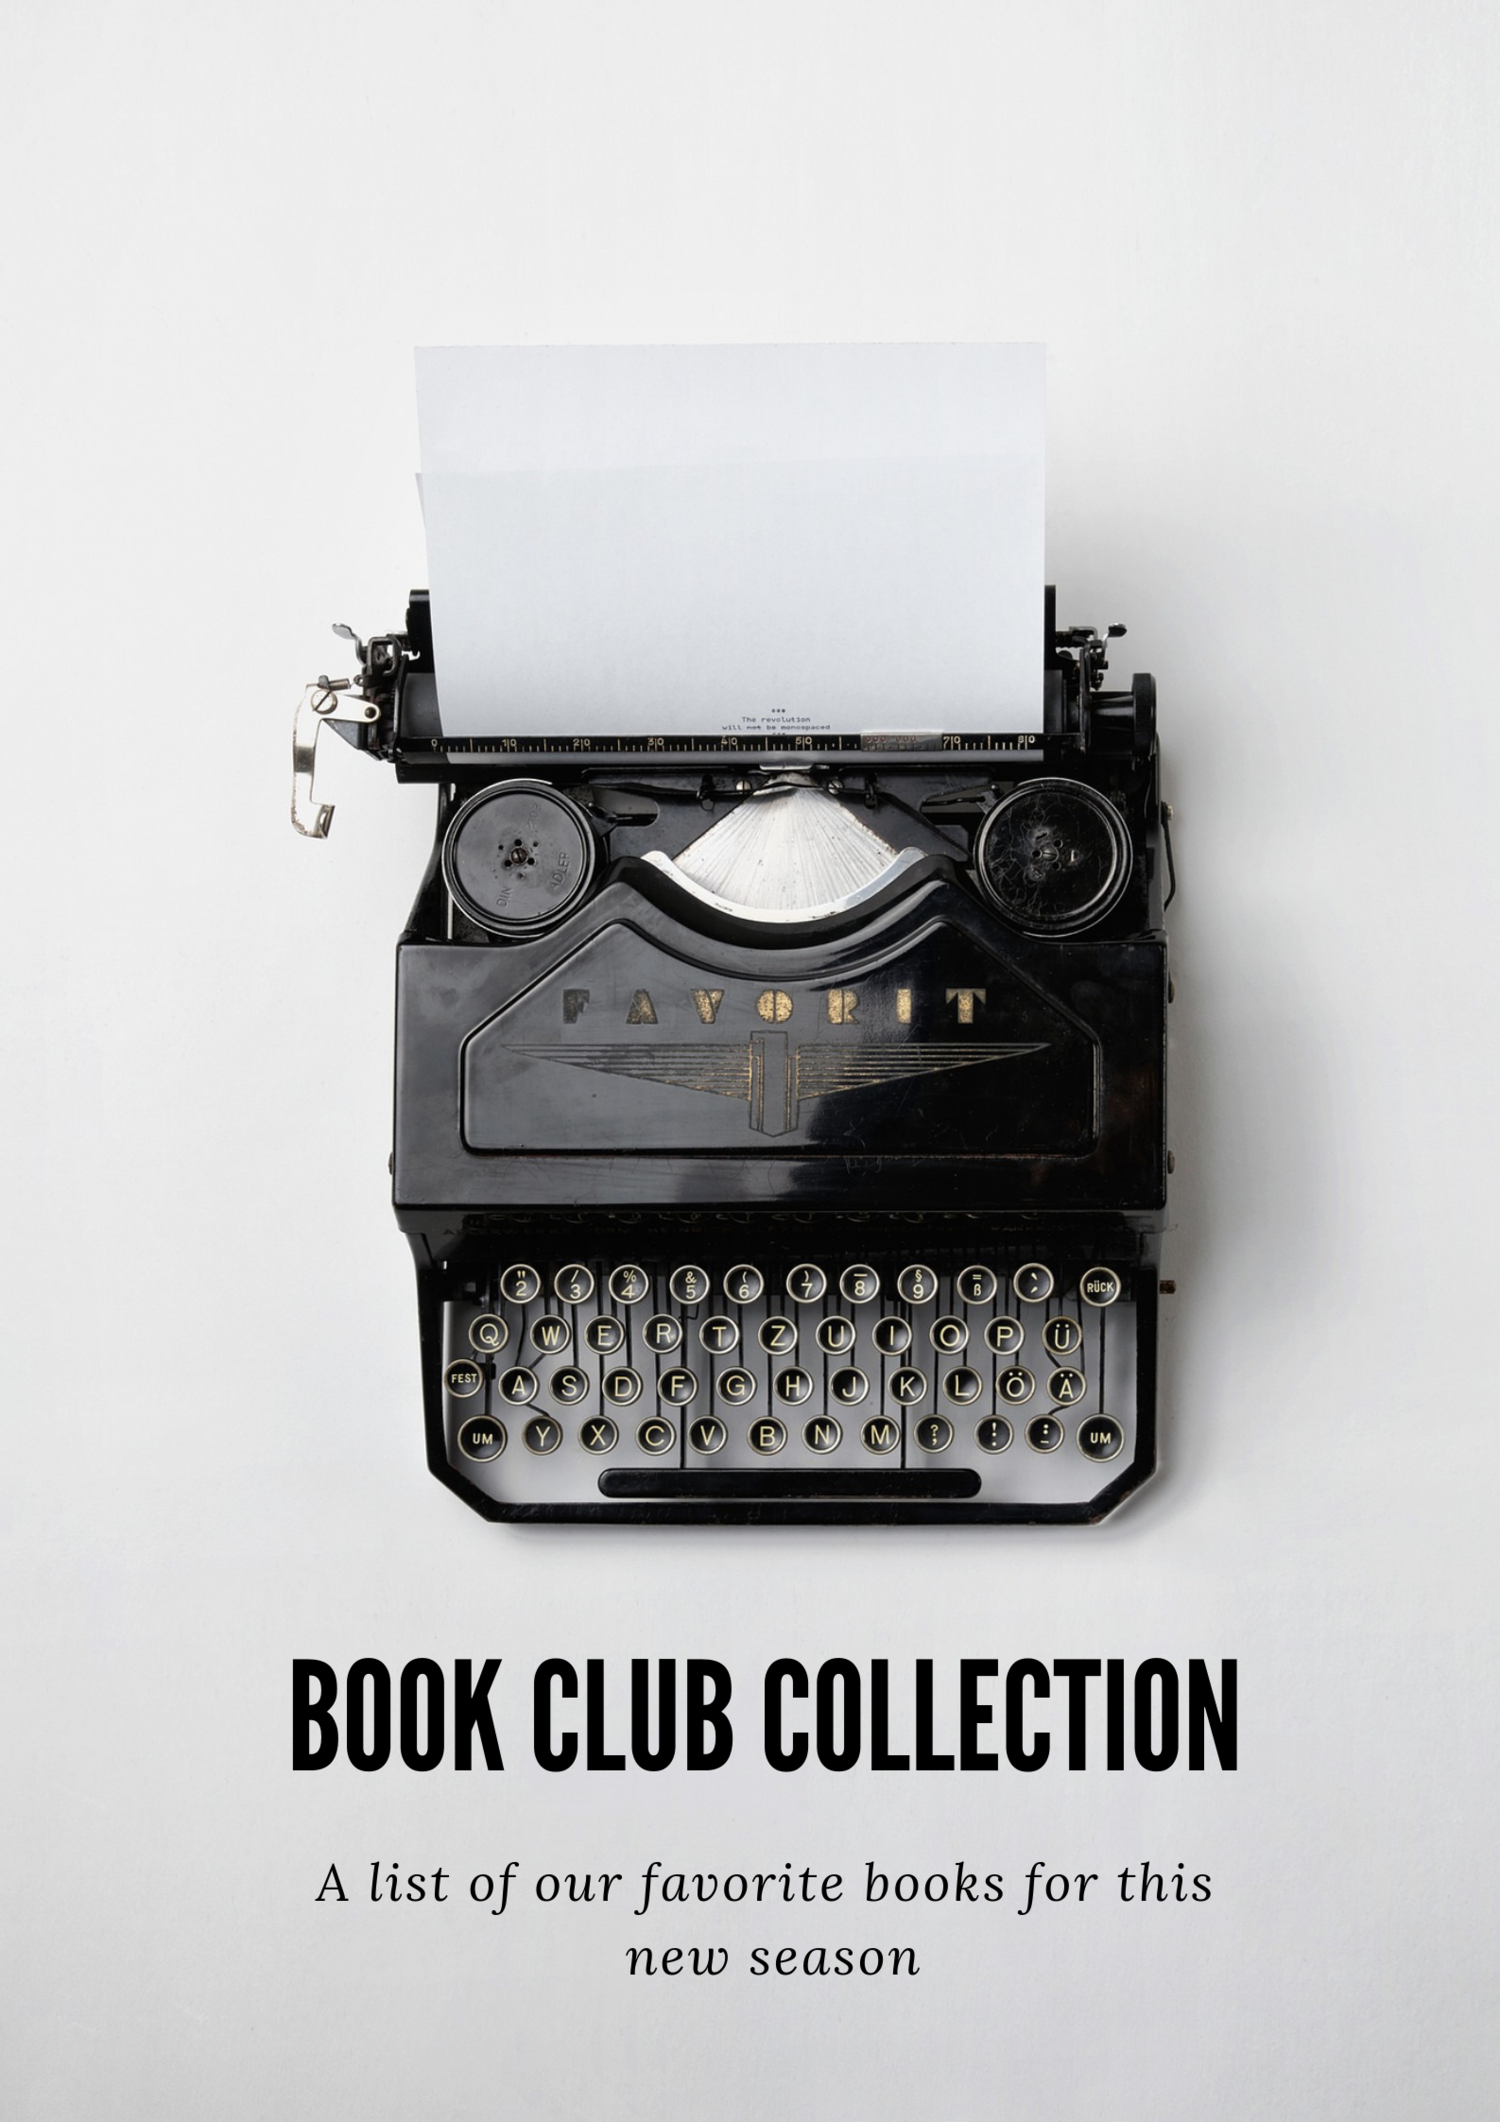 Book Club collection